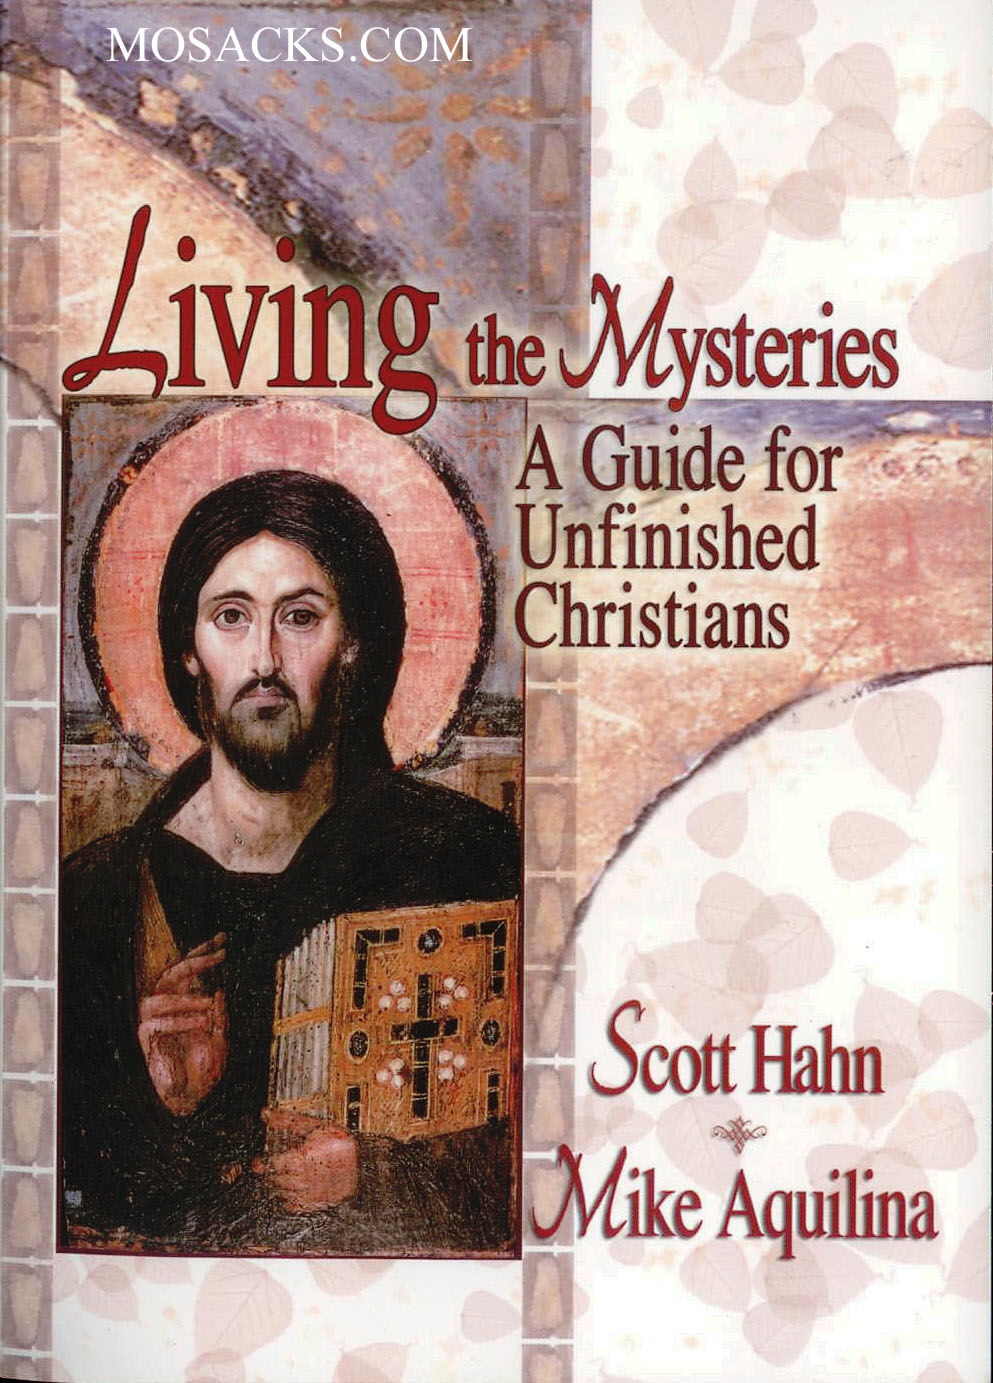 Living the Mysteries: A Guide for Unfinished Christians, Hahn, Aquilina